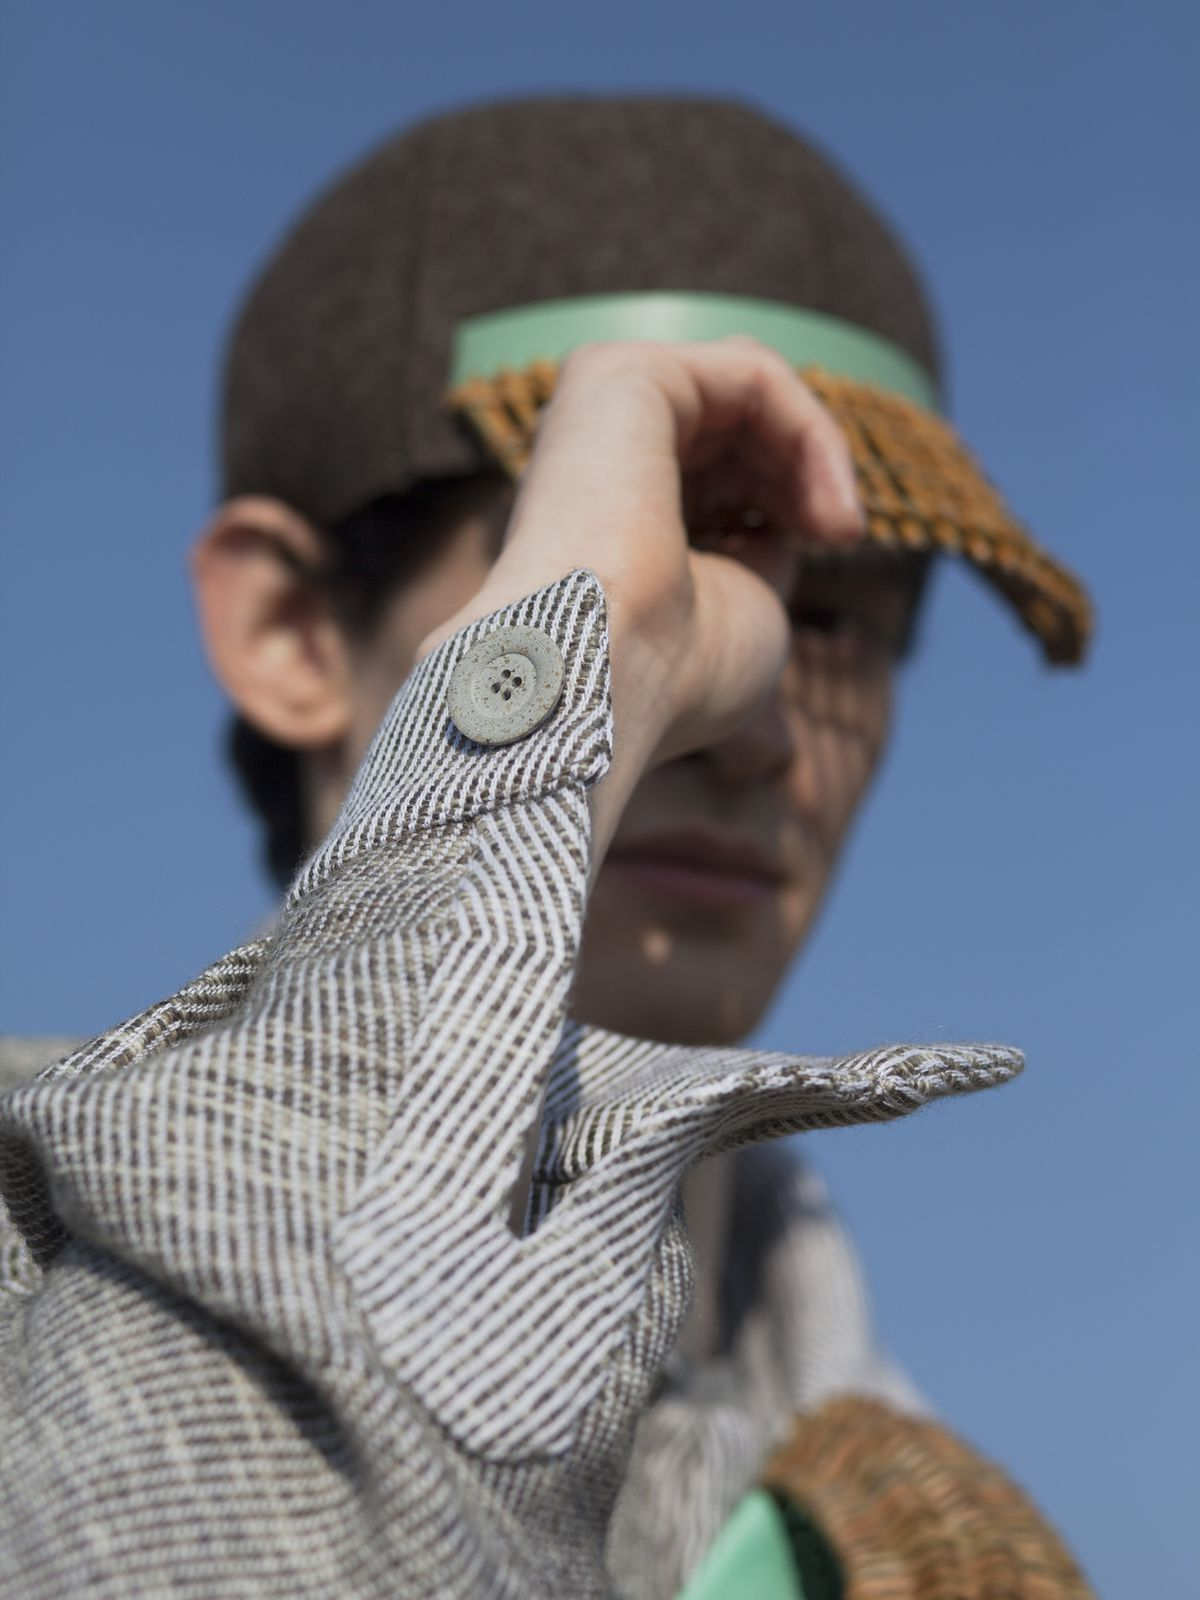 A detail of a man wearing a jacket tipping the brim of a ball cap made from rattan